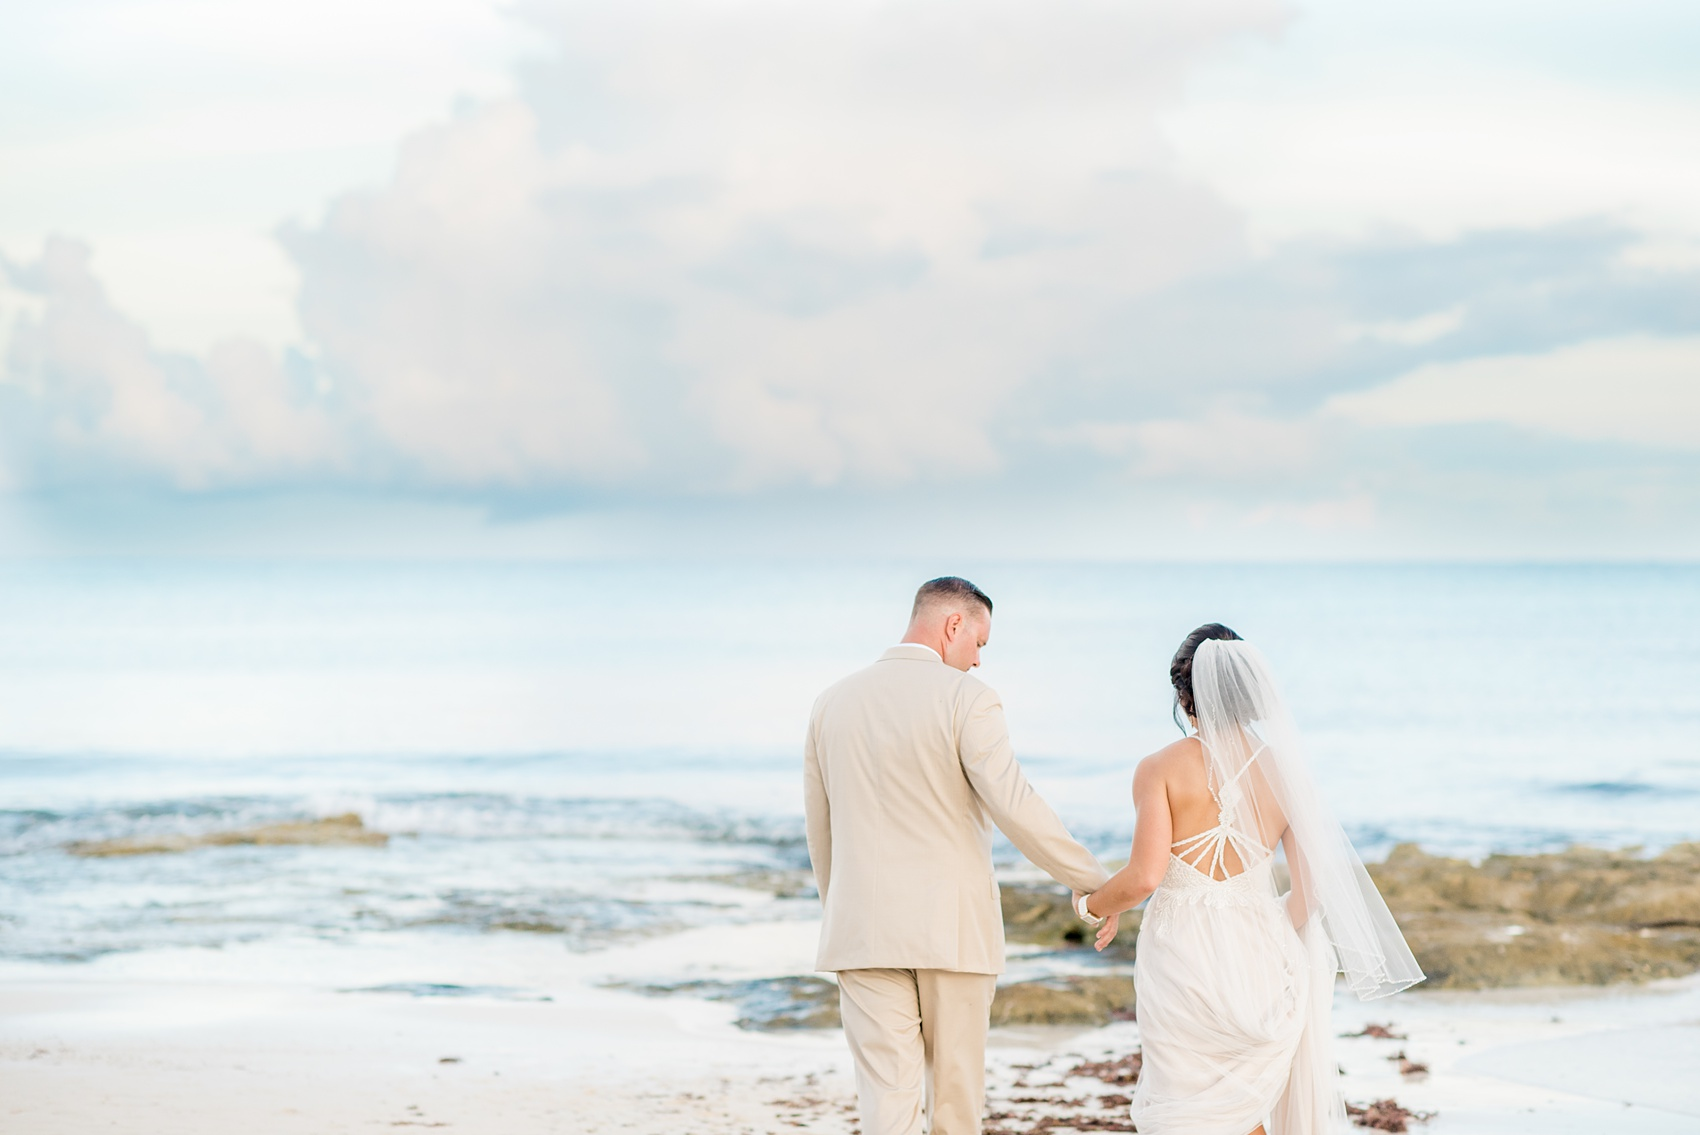 Mikkel Paige Photography photos from a wedding at Grand Paraiso, Mexico, Playa del Carmen Iberostar resort. Picture of the bride and groom walking to on the beach.